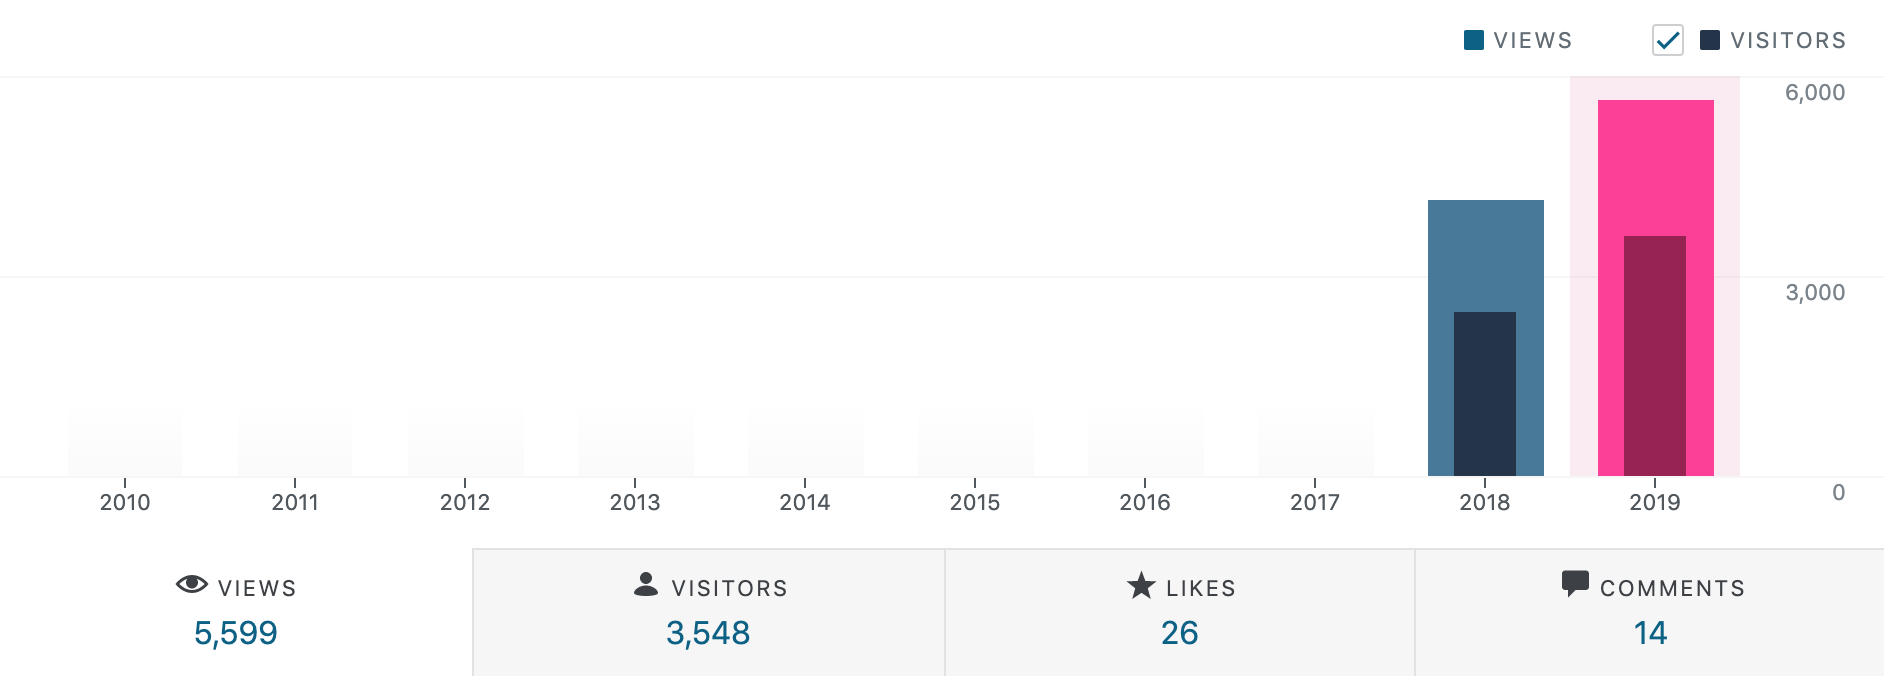 *3 short months of performance from lifeoutsideonline.com